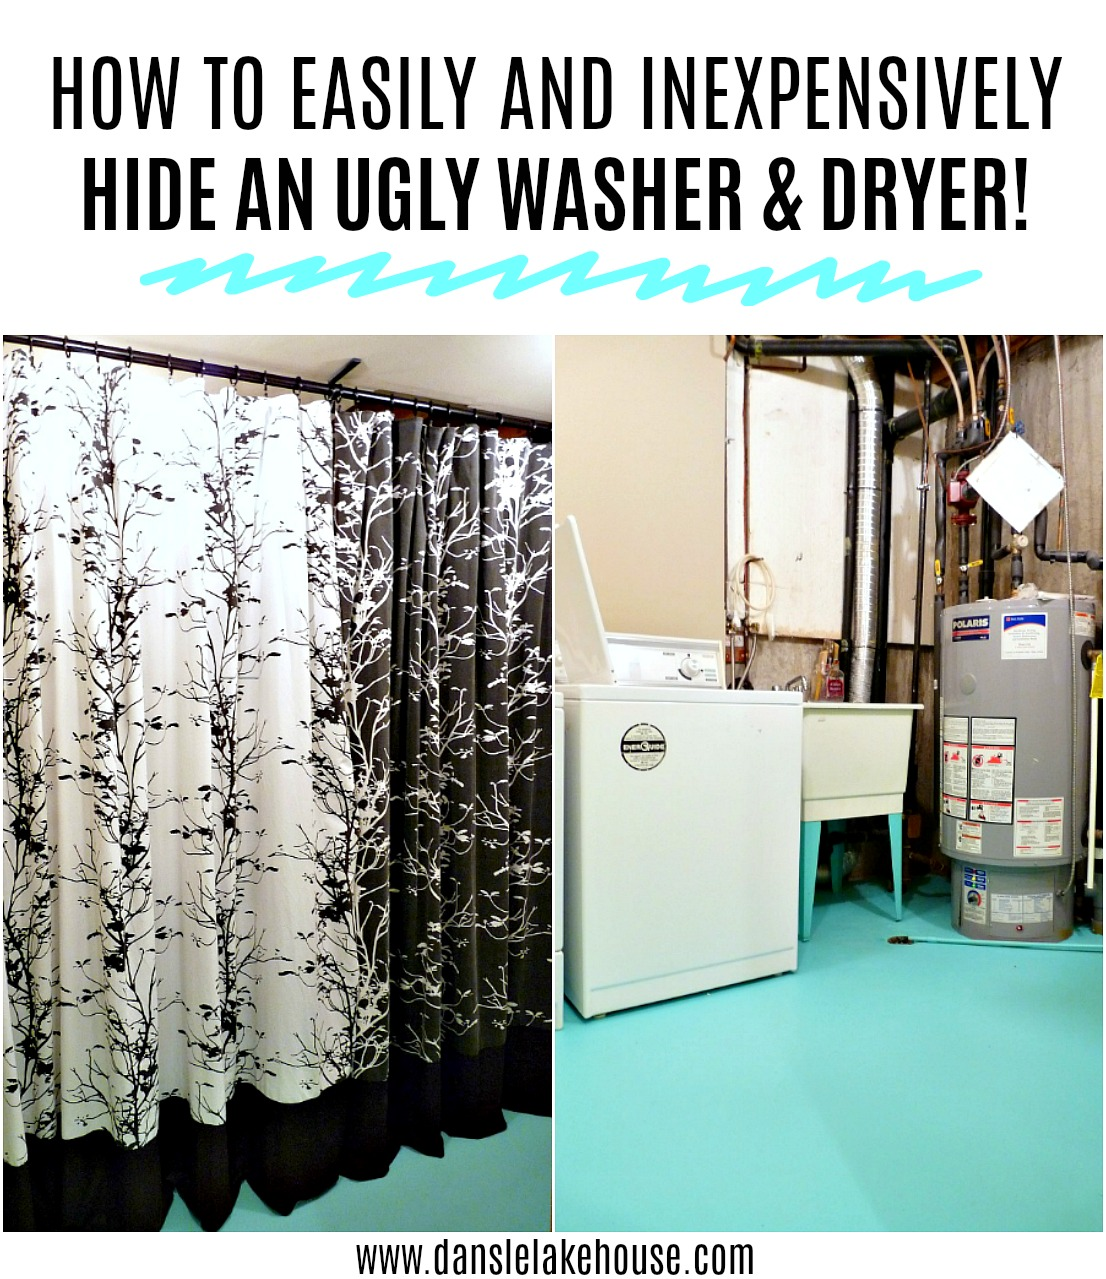 How to Hide an Ugly Washer and Dryer with an Upcyled Curtain. Budget-Friendly Laundry Room Makeover Idea! #laundroom #upcycle #savingmoney #budgethomedecor